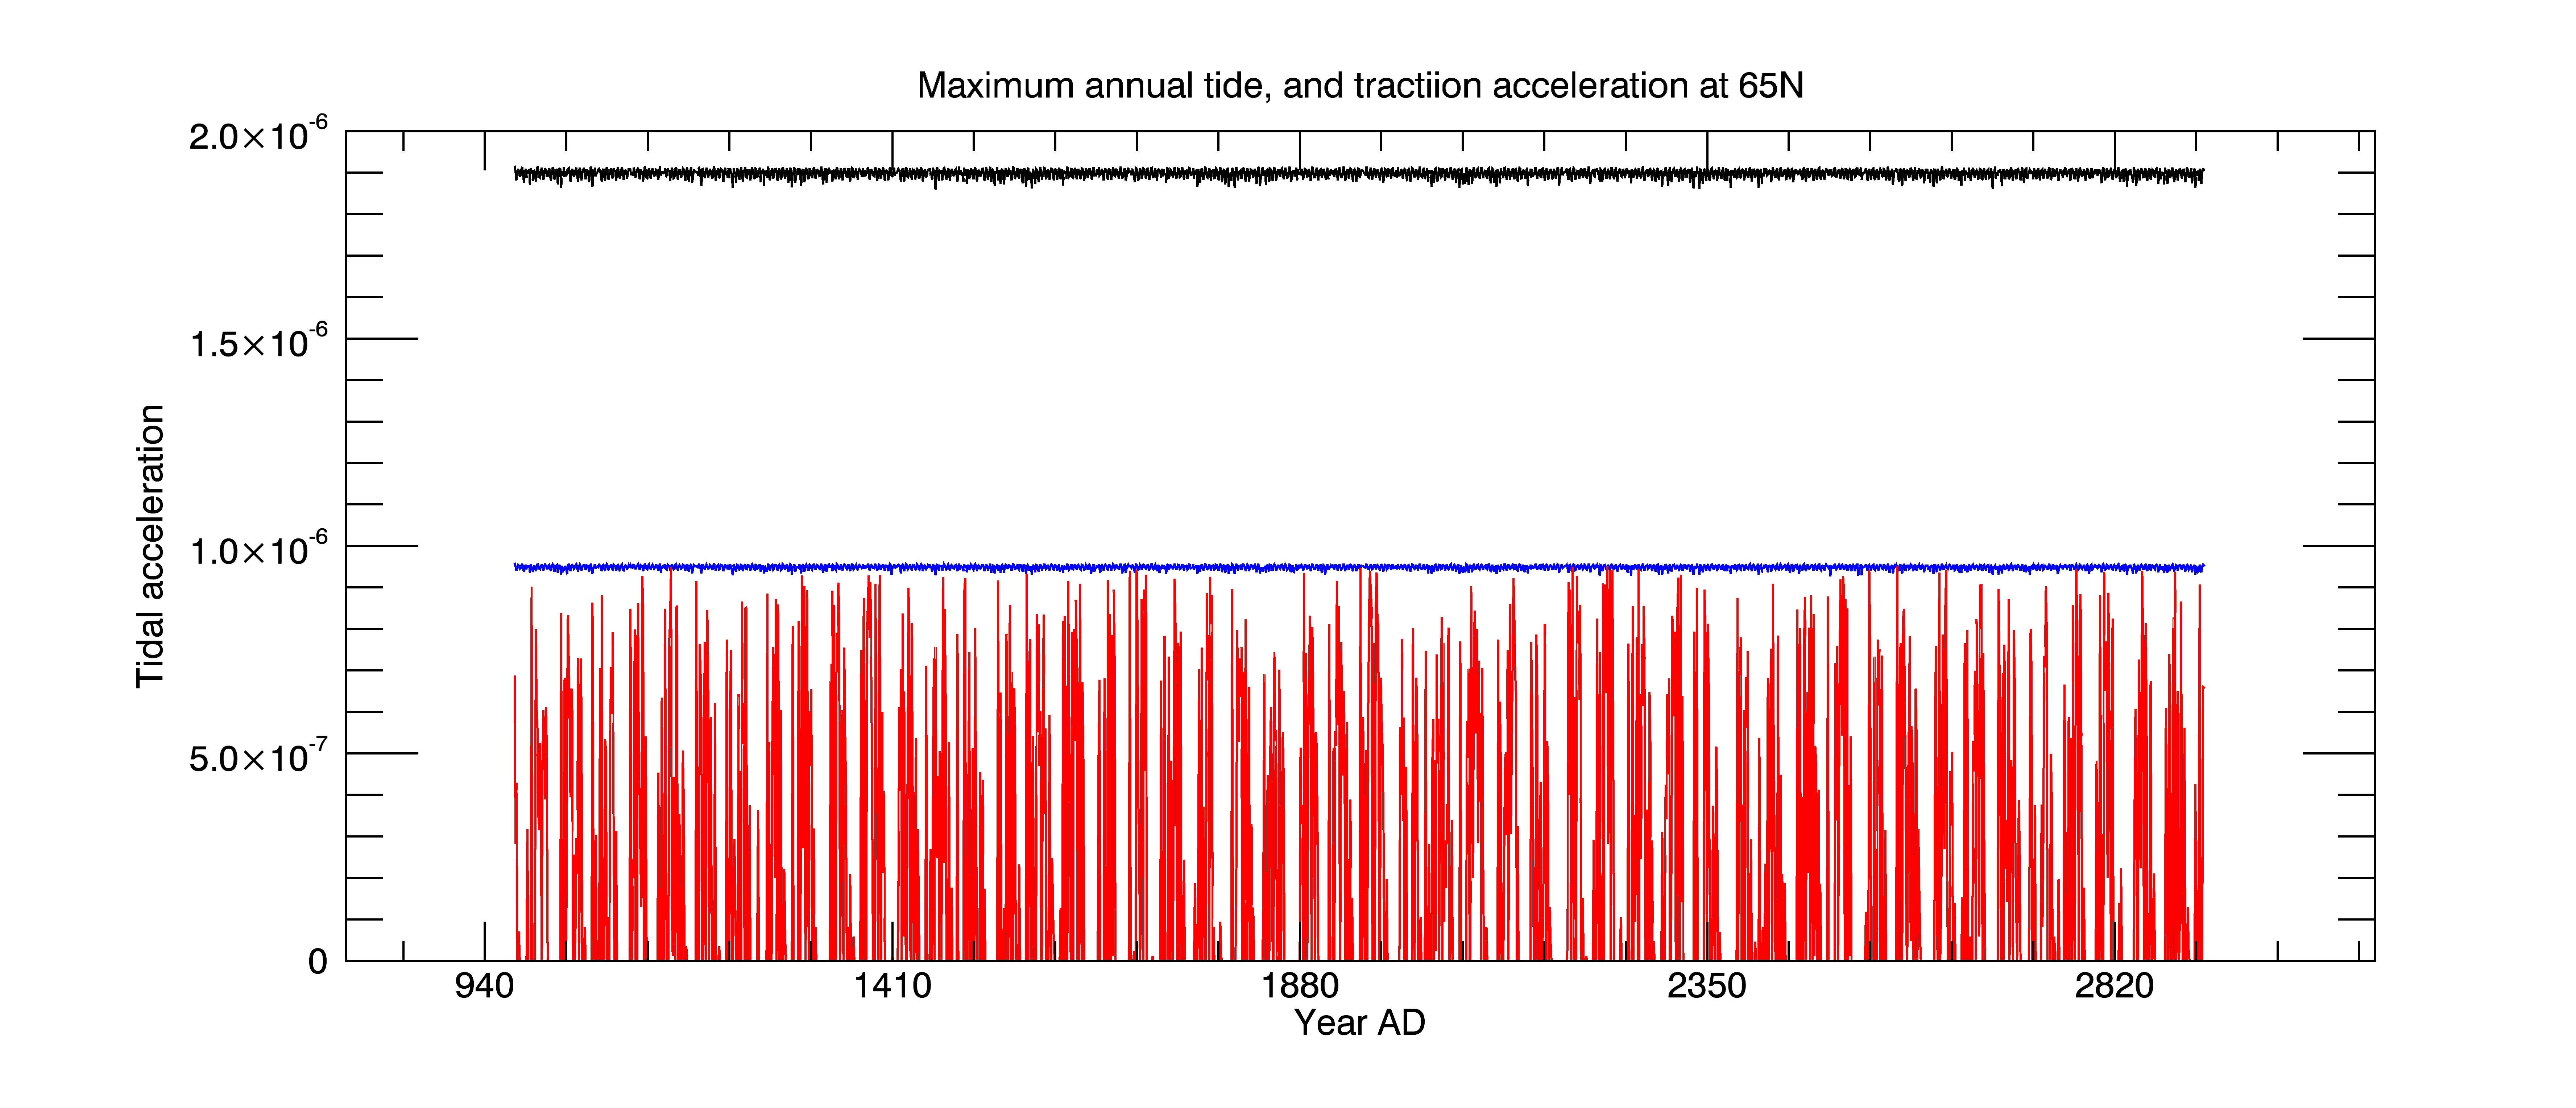 The black curve shows the annual maximum tide. The blue curve shows independently the maximum tractional tide at 65N. Both are essentially constant with time. However the melt index shown in red shows a regular ~40 year cycle showing coincidence of maximum tide and high summer insolation.